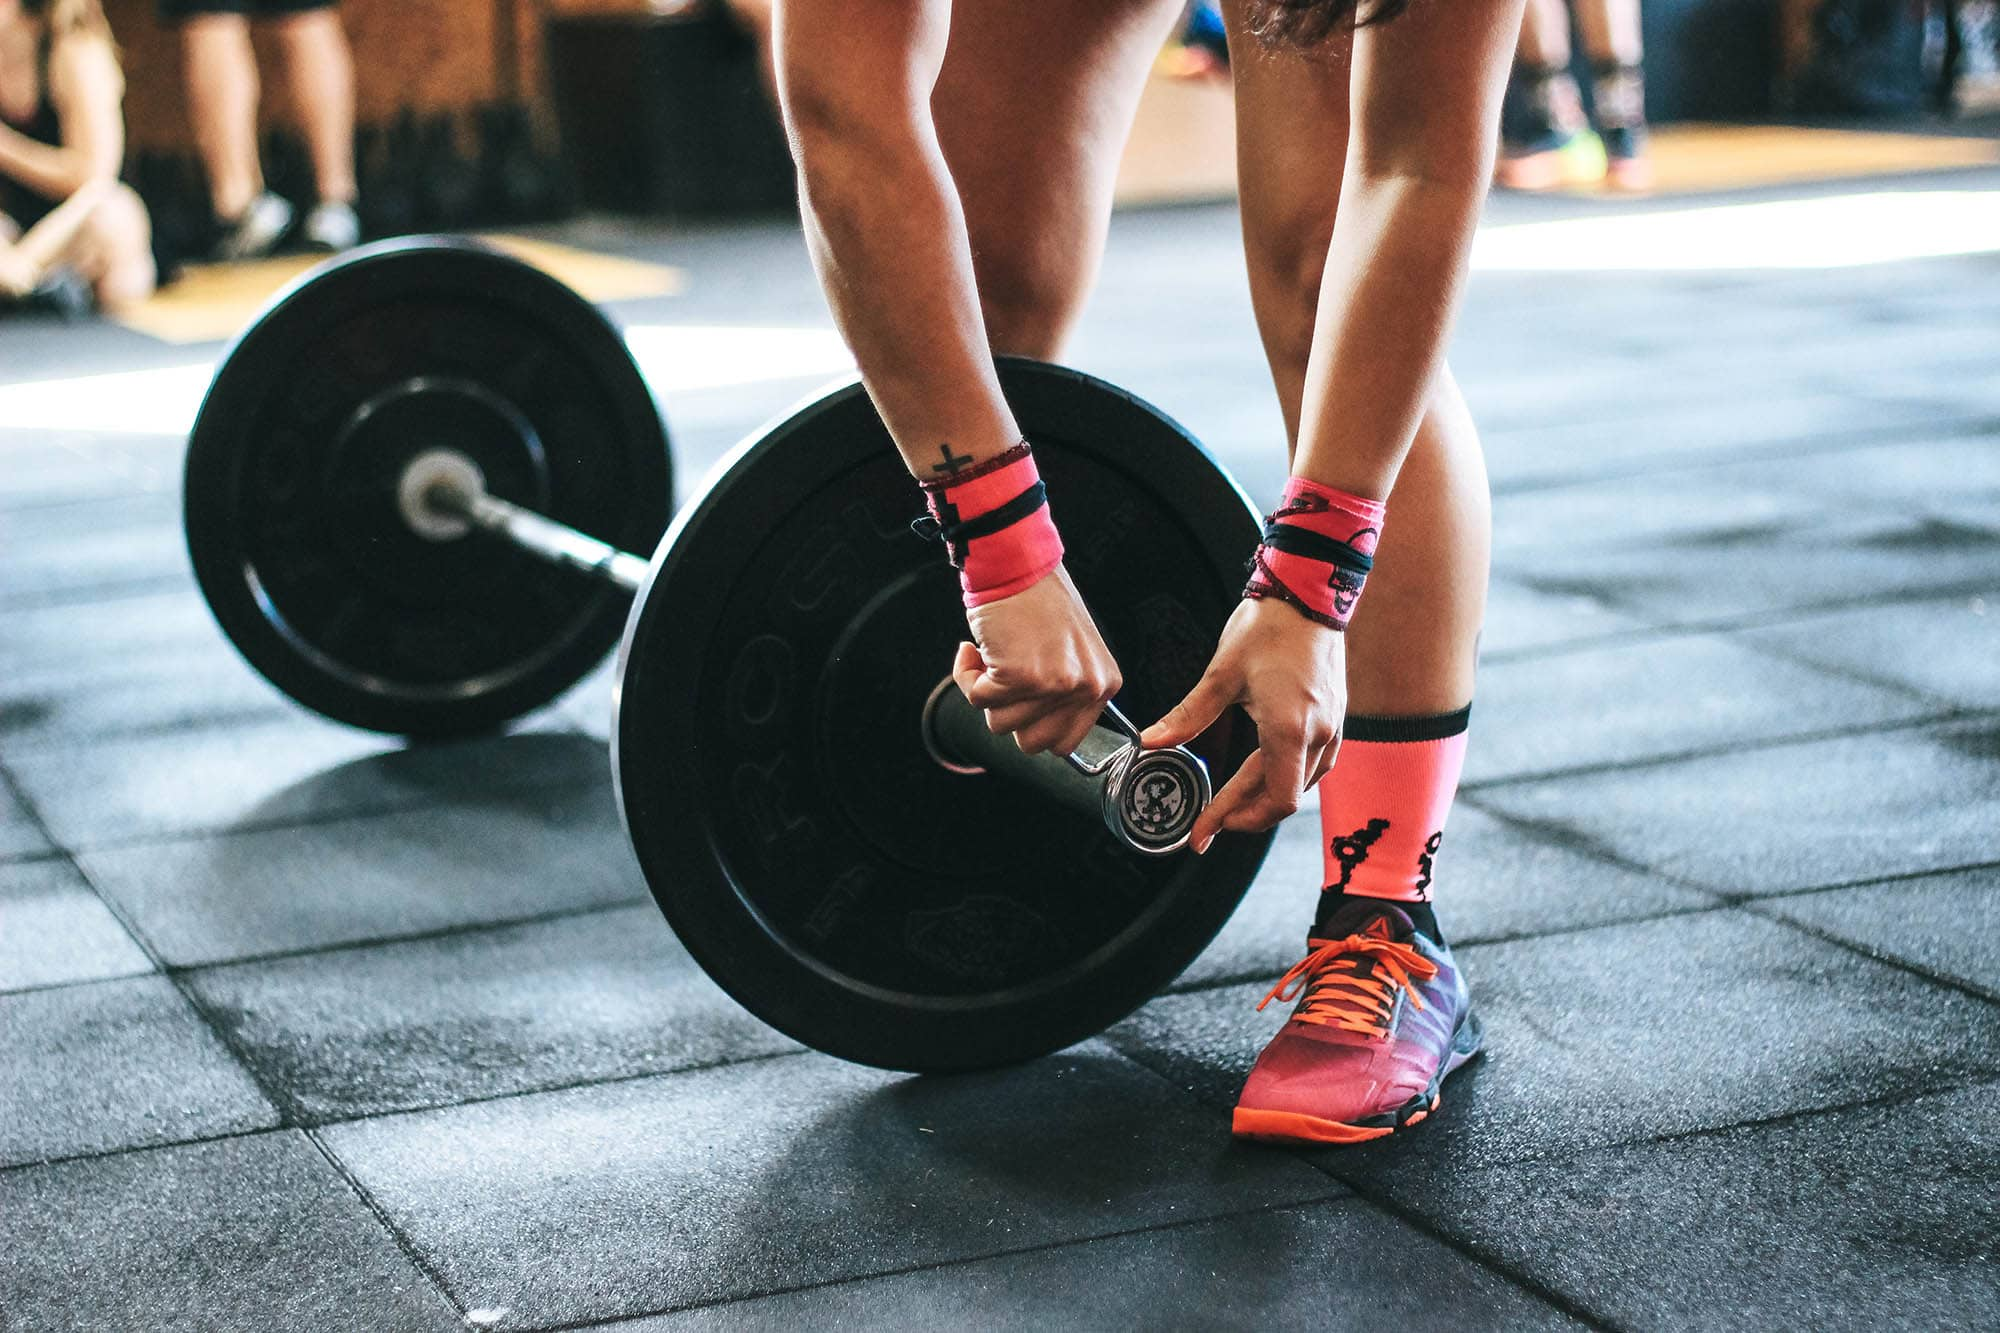 Photo of weight lifter in gym. (photo: unsplash)